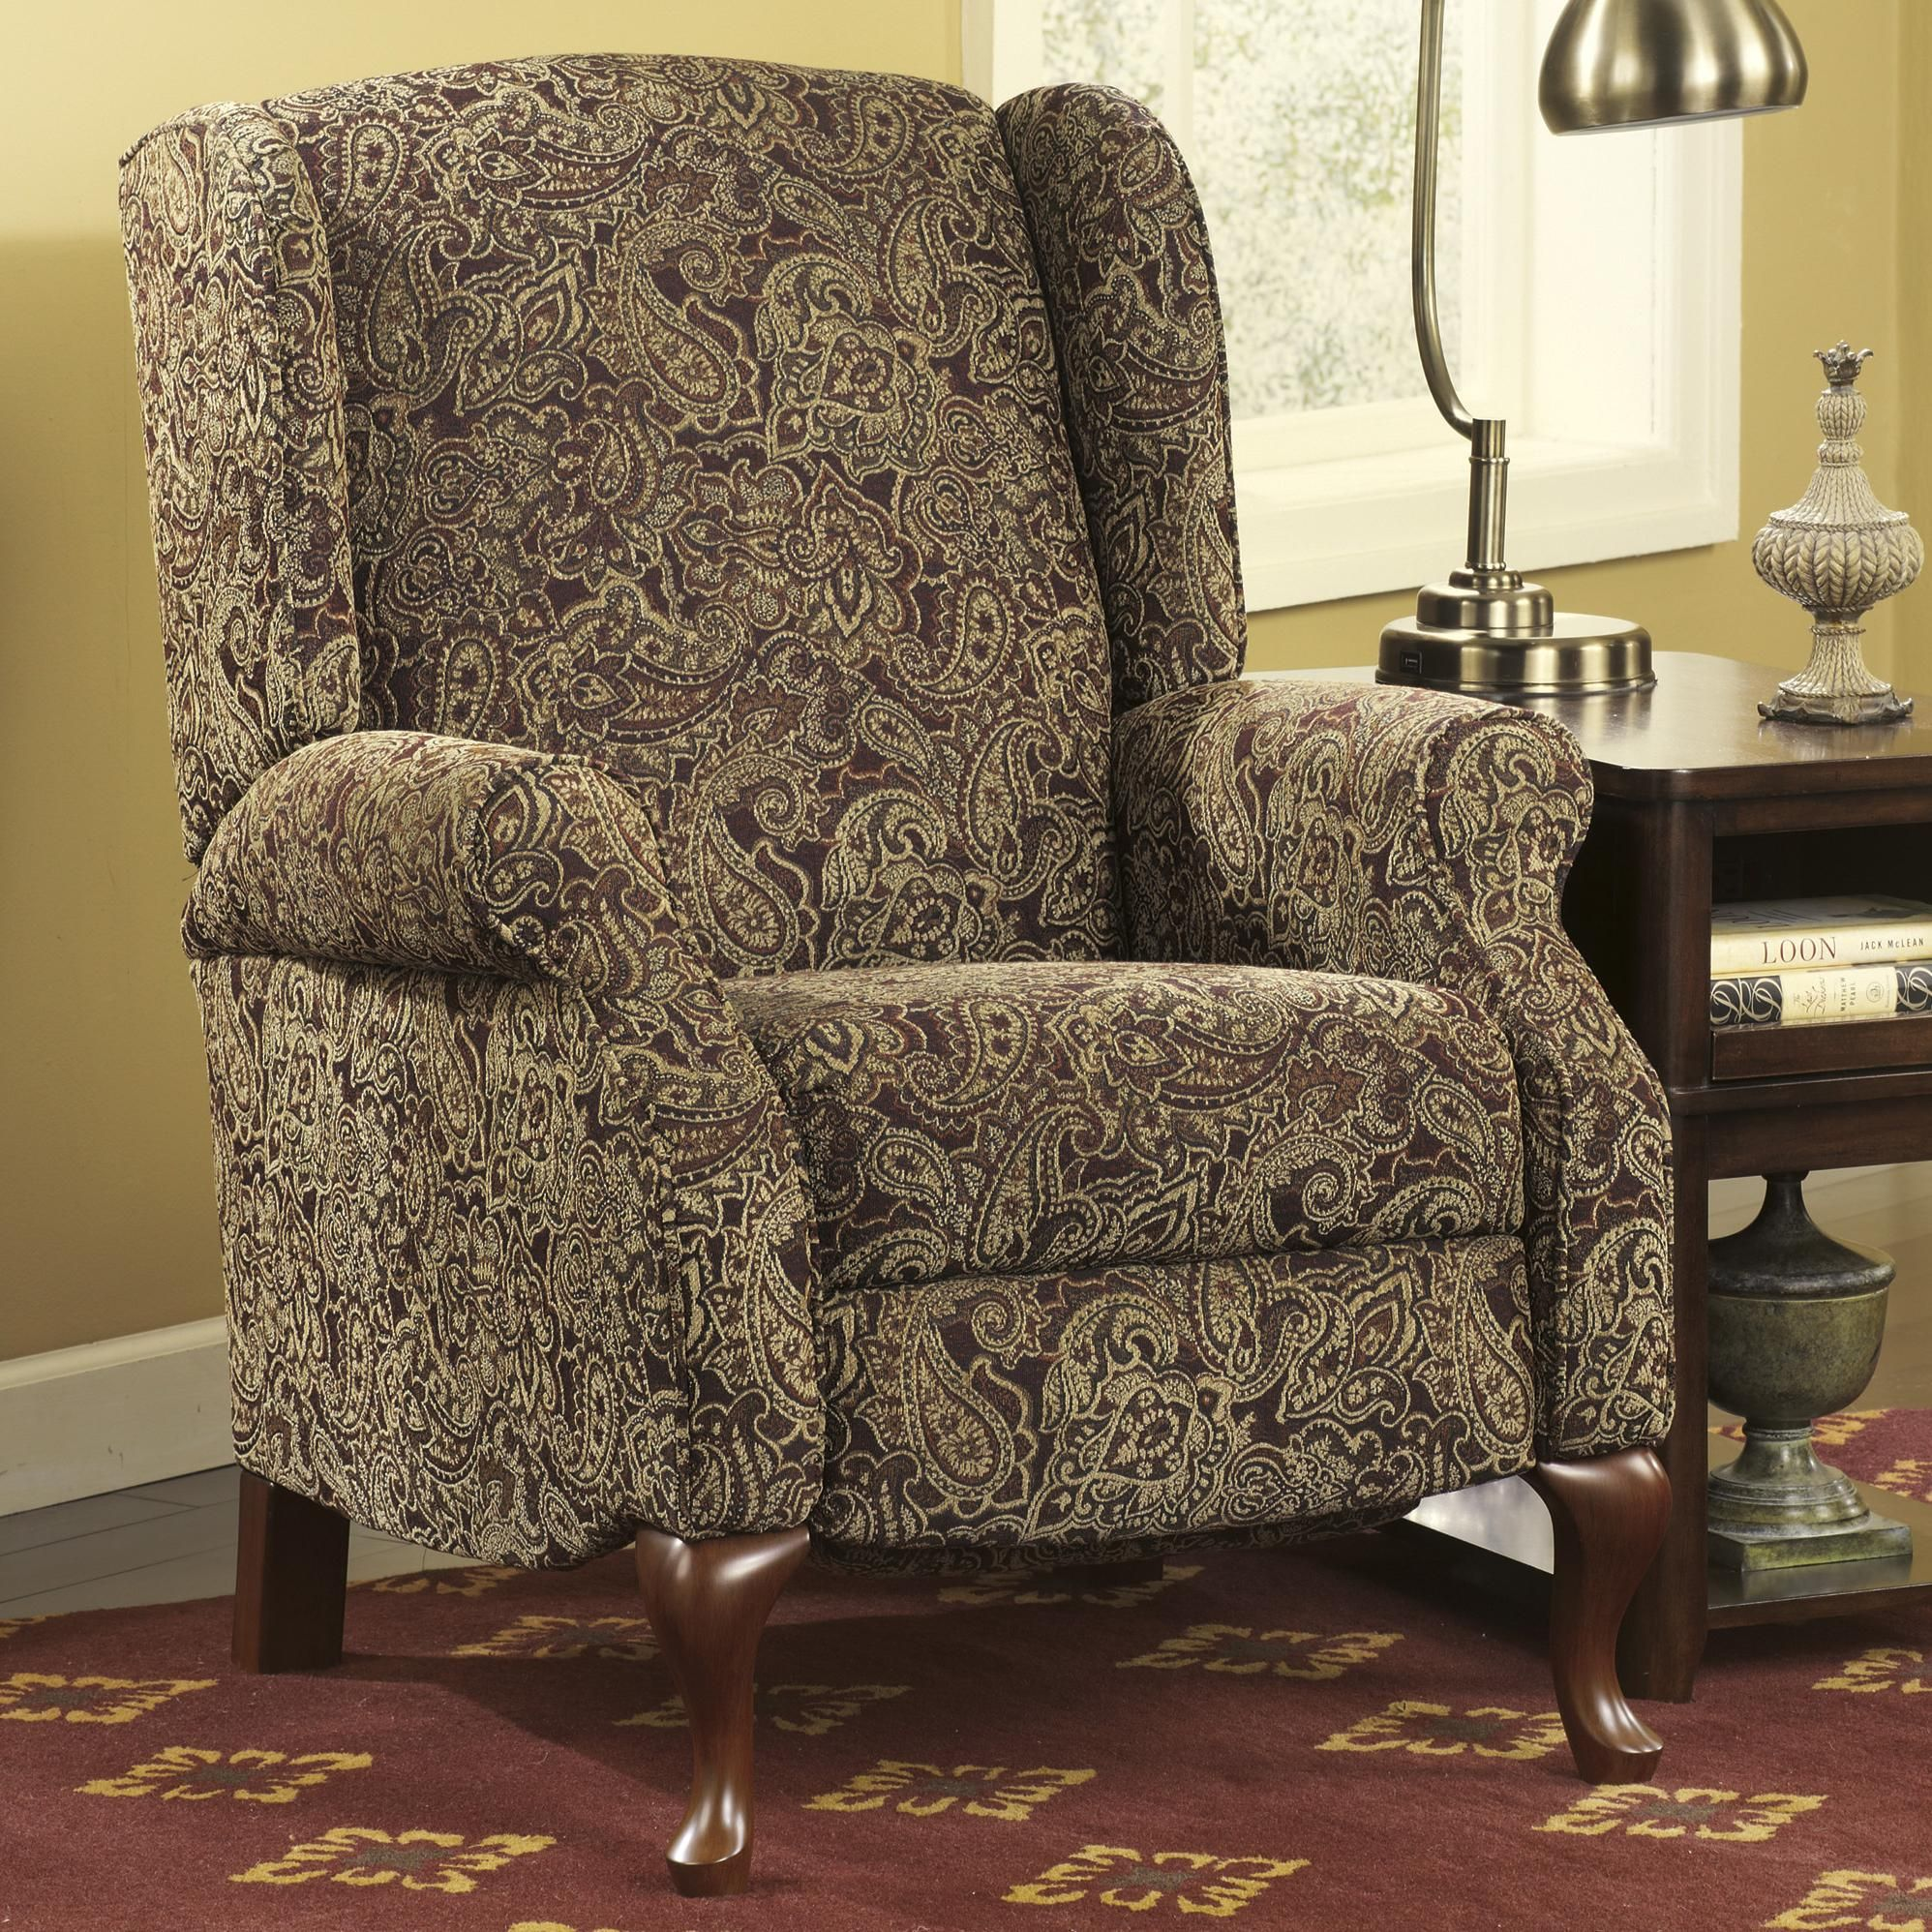 Arms Patterned Accent Chairs